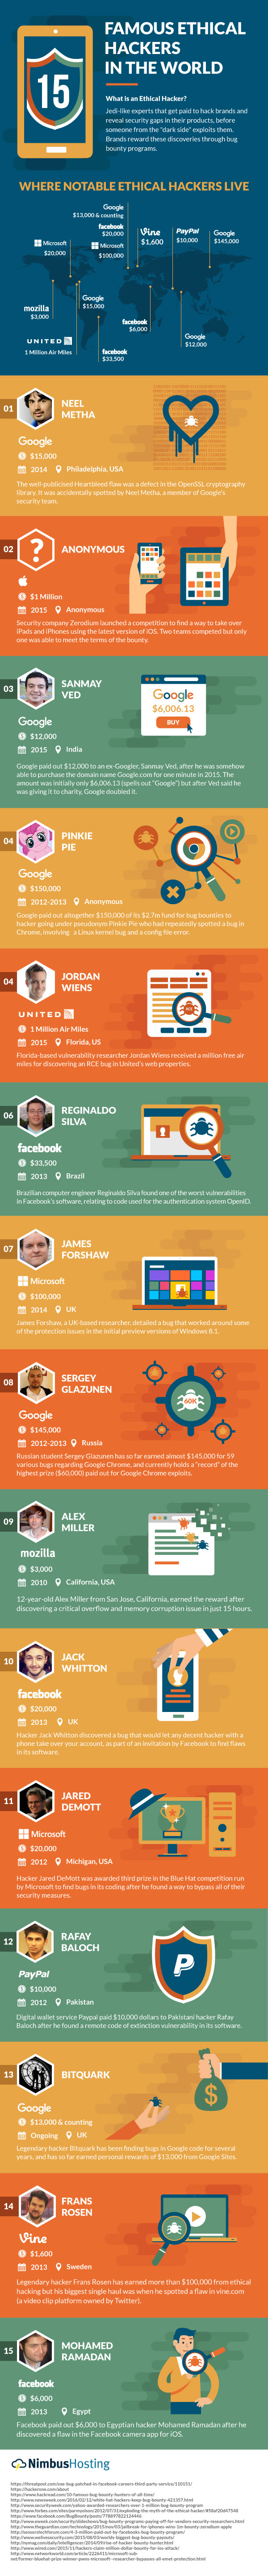 15 Most Notable Ethical Hackers In The World